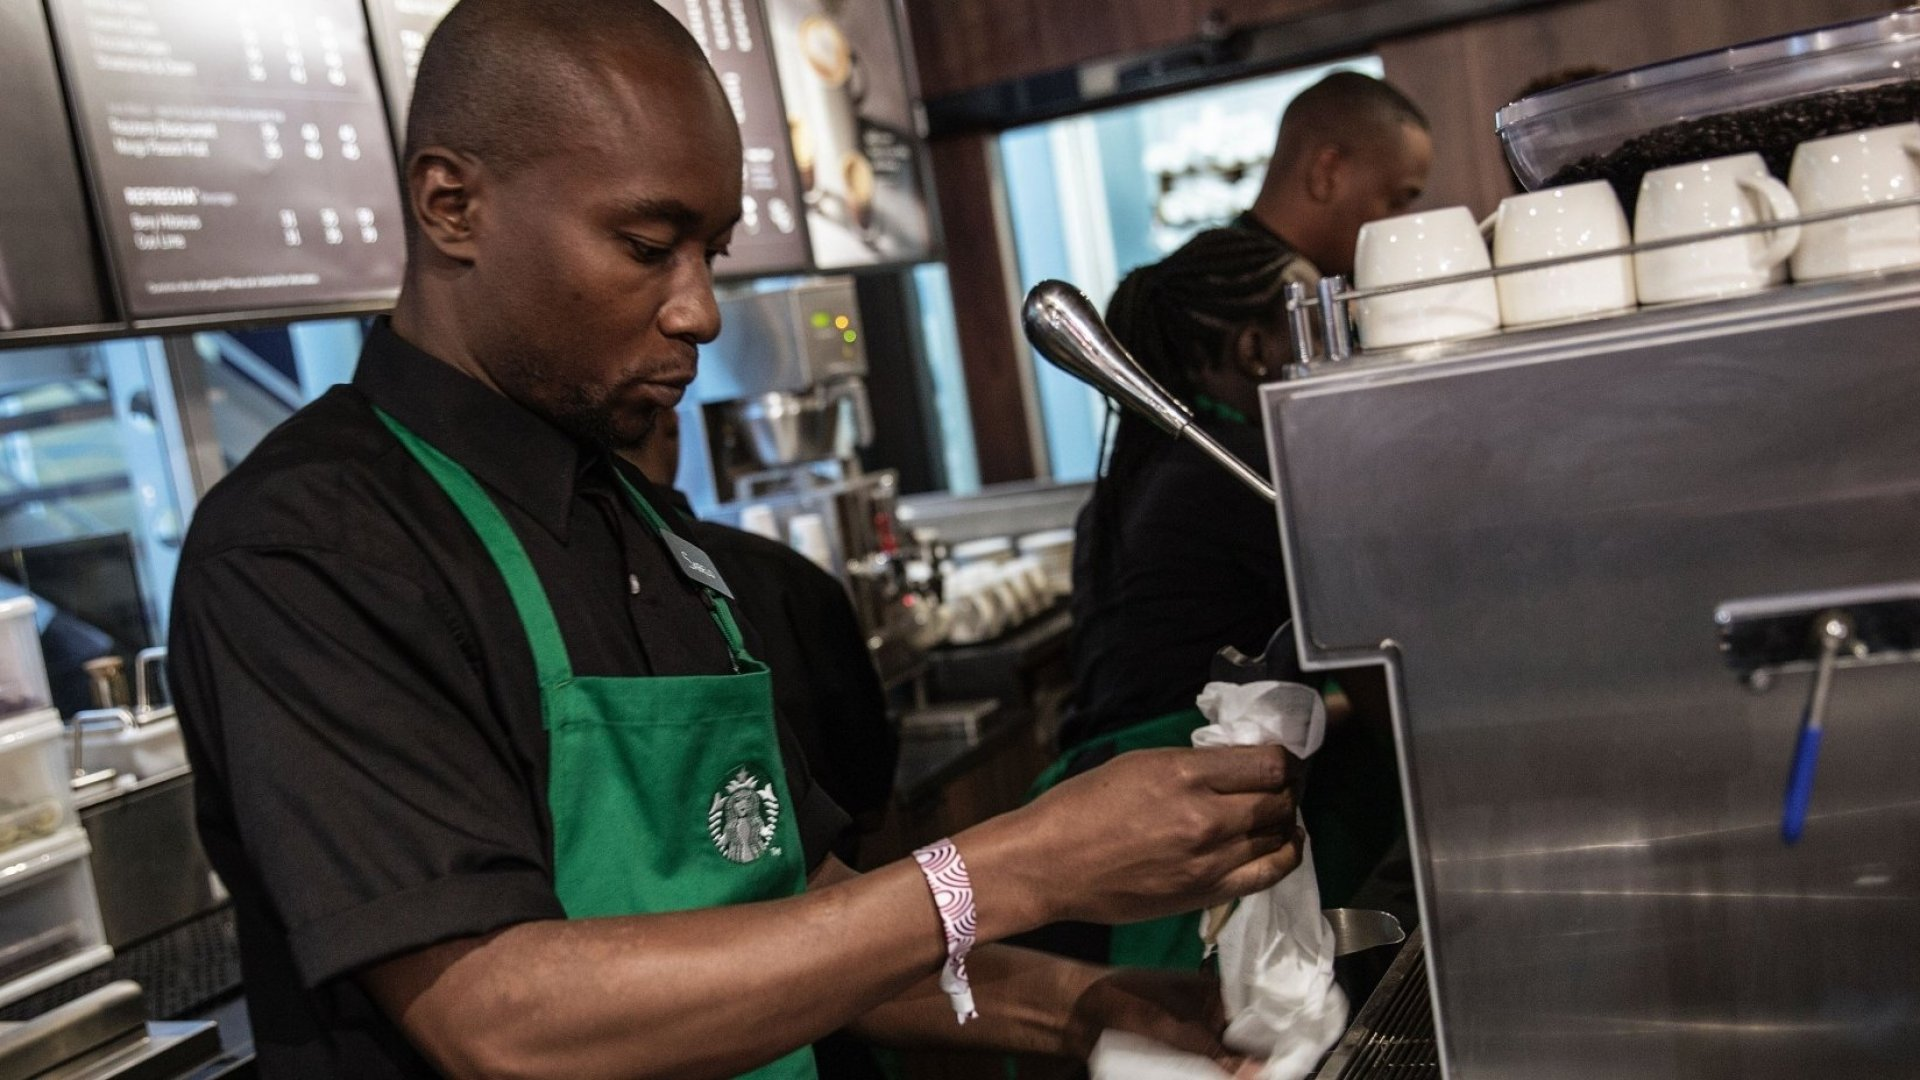 Starbucks Is Putting $250 Million Into Boosting Employee Pay and Benefits After the Tax Cut